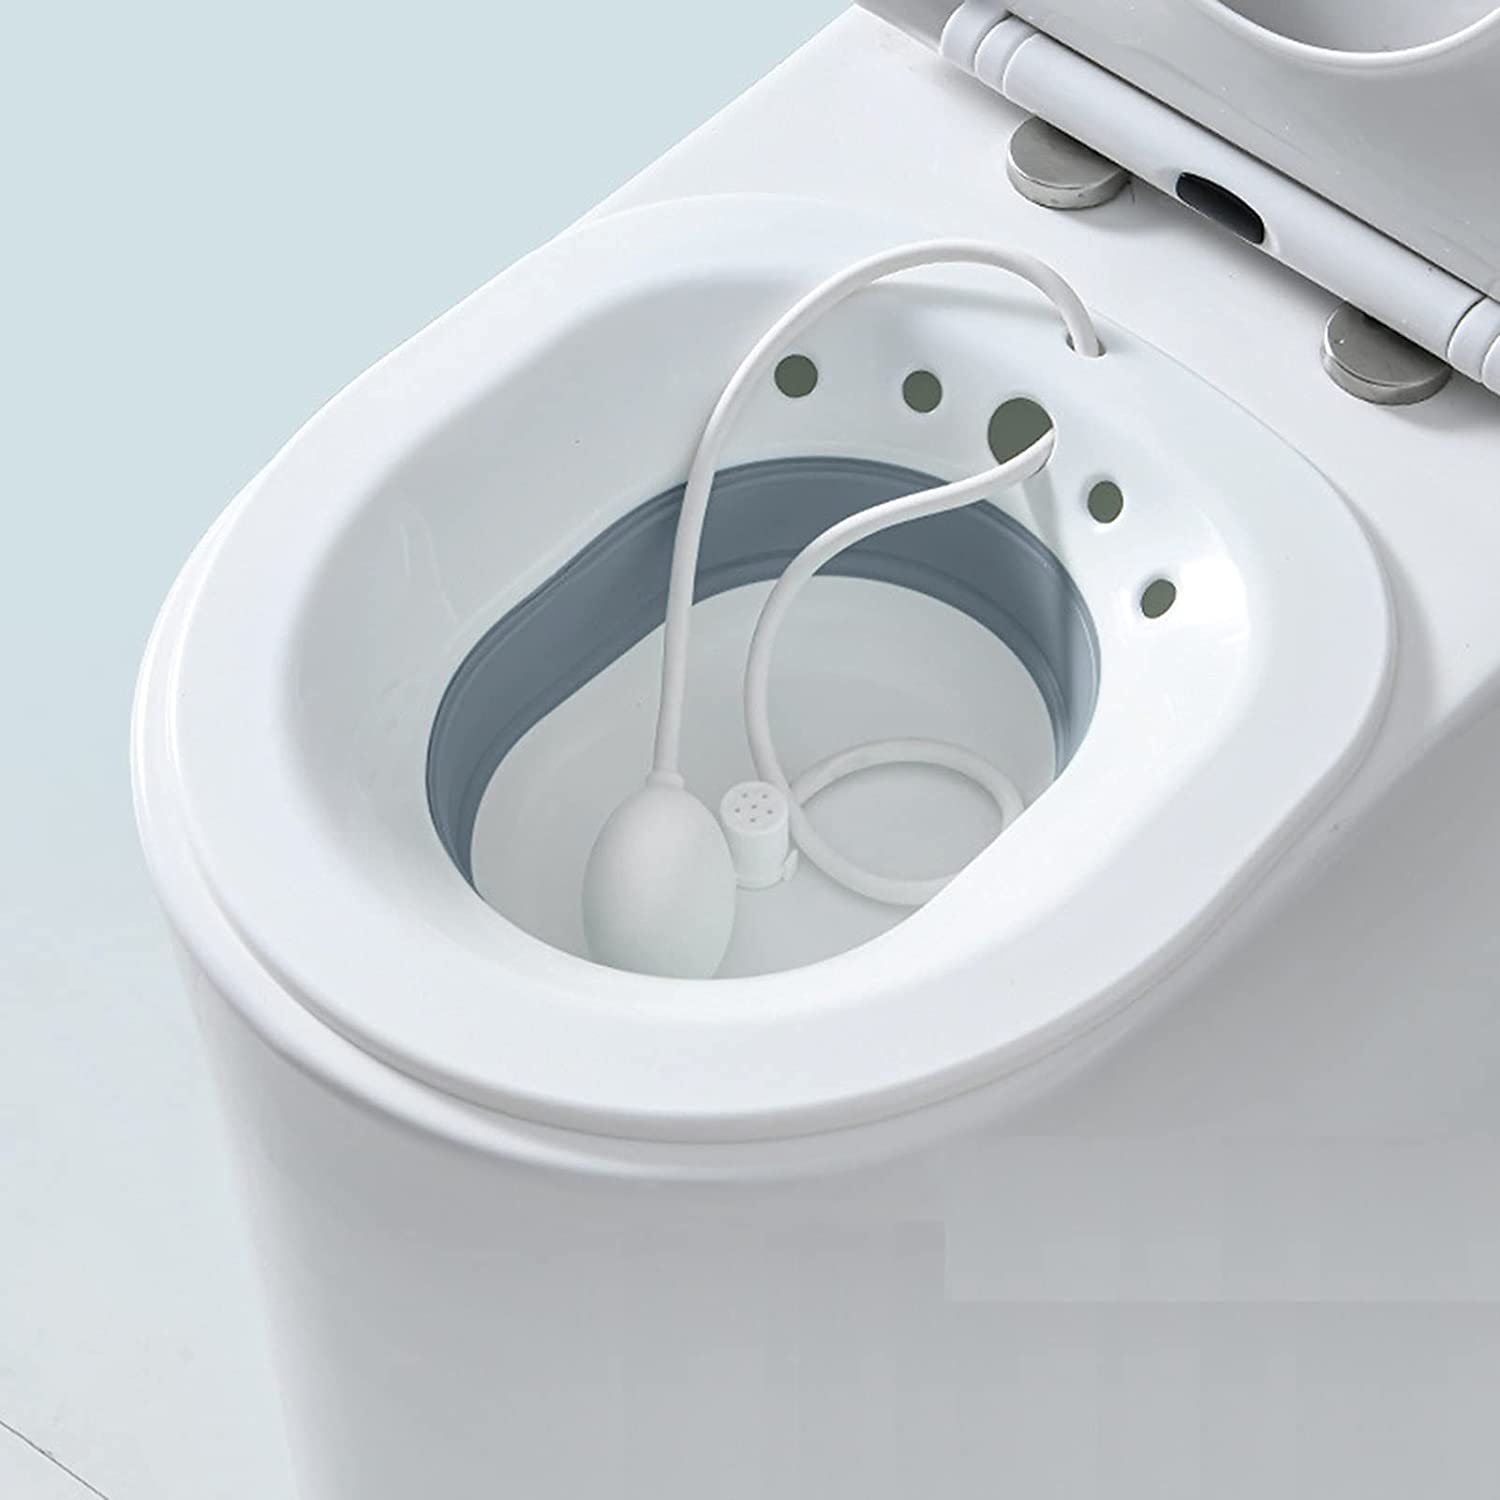 XYUfly20 Toilet Seat Portable 70% OFF Outlet Bath Design Ergonomic Manufacturer regenerated product